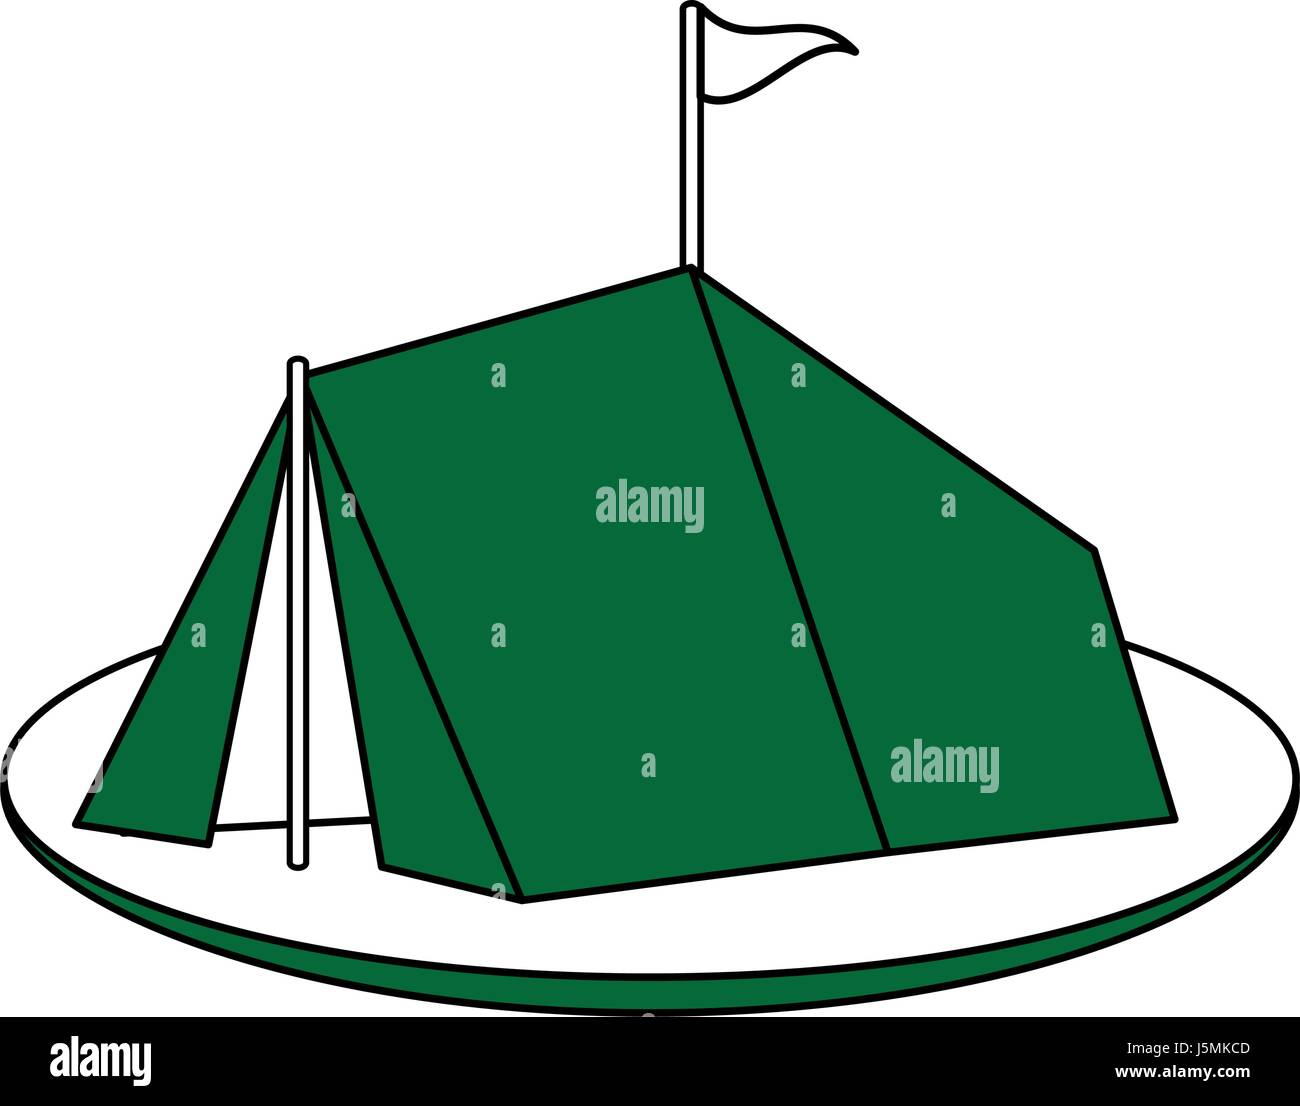 color silhouette image green c&ing tent in grass with flag  sc 1 st  Alamy & color silhouette image green camping tent in grass with flag Stock ...